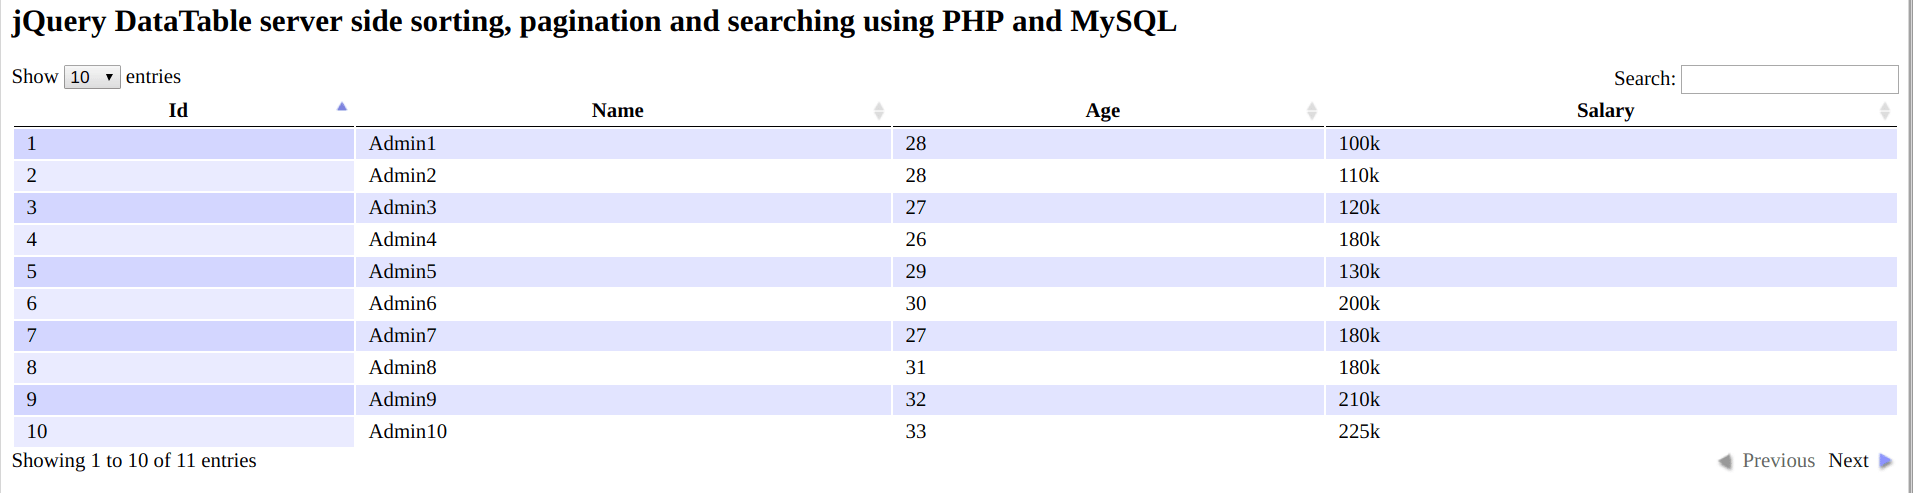 jQuery DataTable server side sorting,pagination and searching using PHP and MySQL